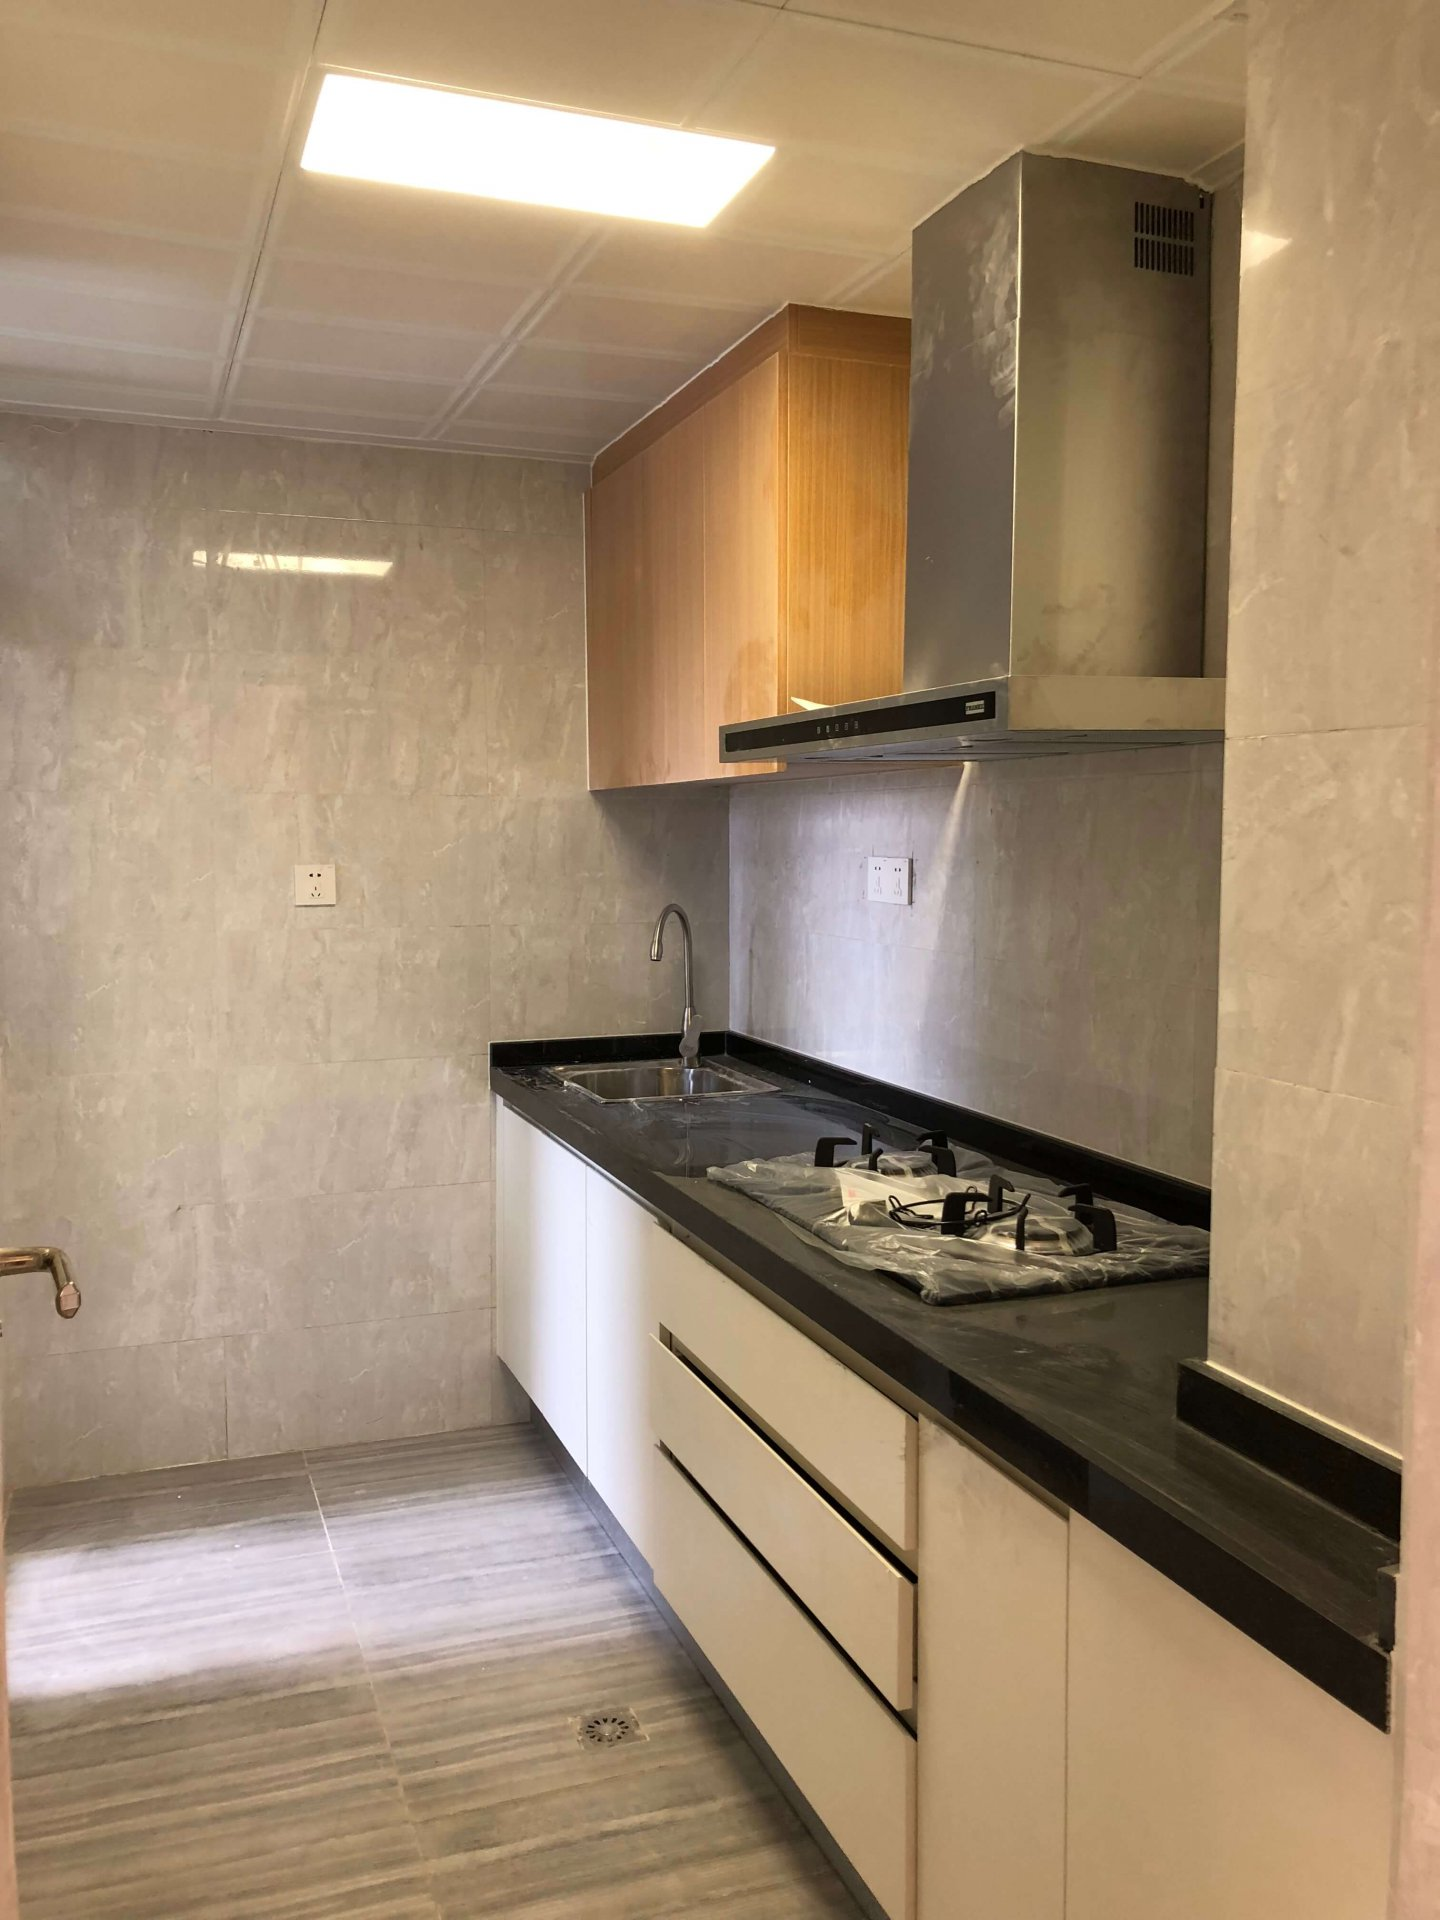 2bedrooms condo for sale in Toul Kork Area